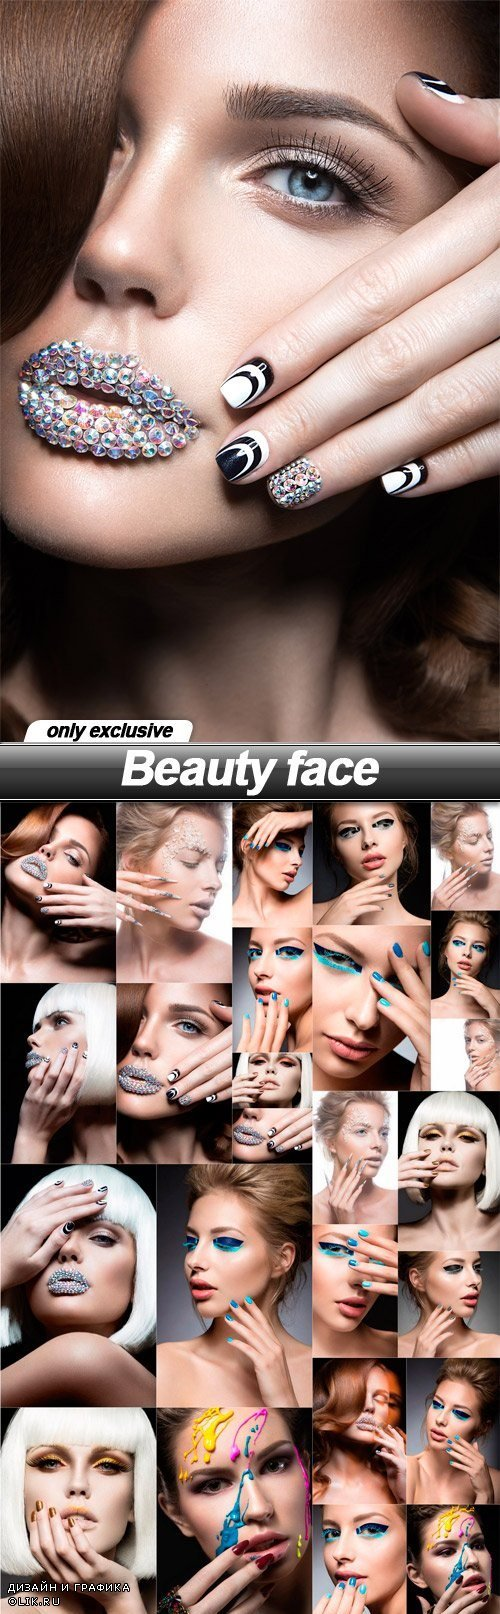 Beauty face - 25 UHQ JPEG